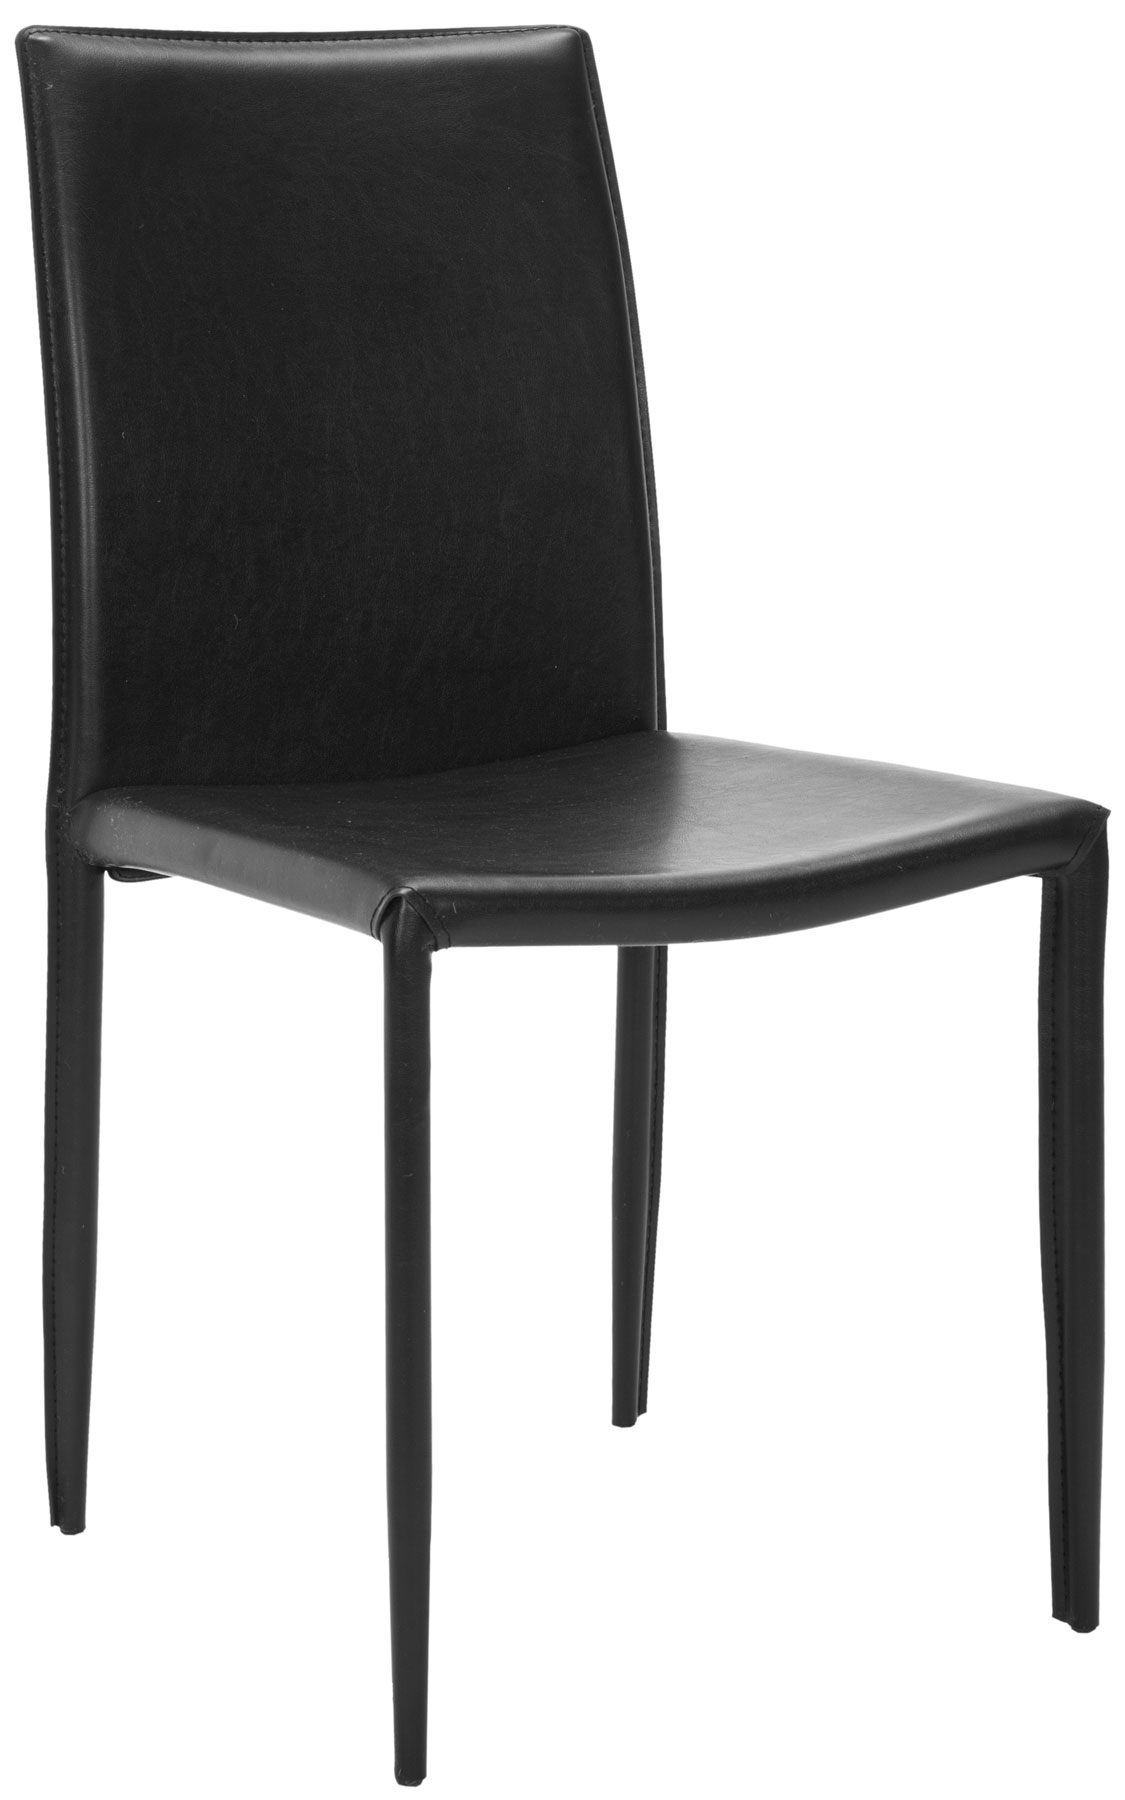 safavieh karna dining chair office booster seat fox2009b set2 chairs furniture by